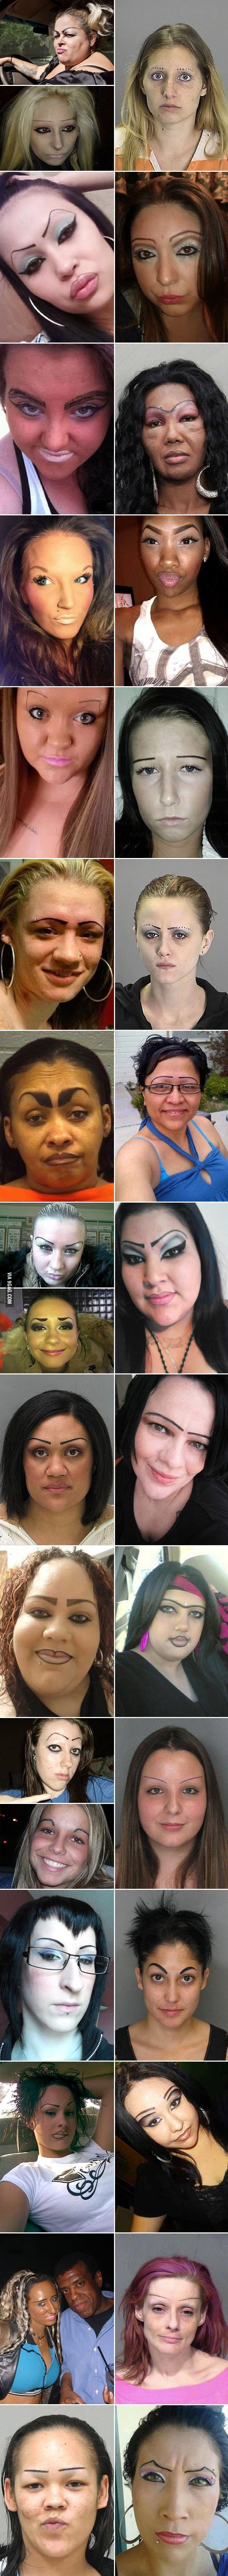 33 Women Who Don't Understand Eyebrows:  I am a bit distracted by peoples eyebrows all the time. Too much. Too little. TOO DRAWN. These eyebrows are a total nightmare for me.